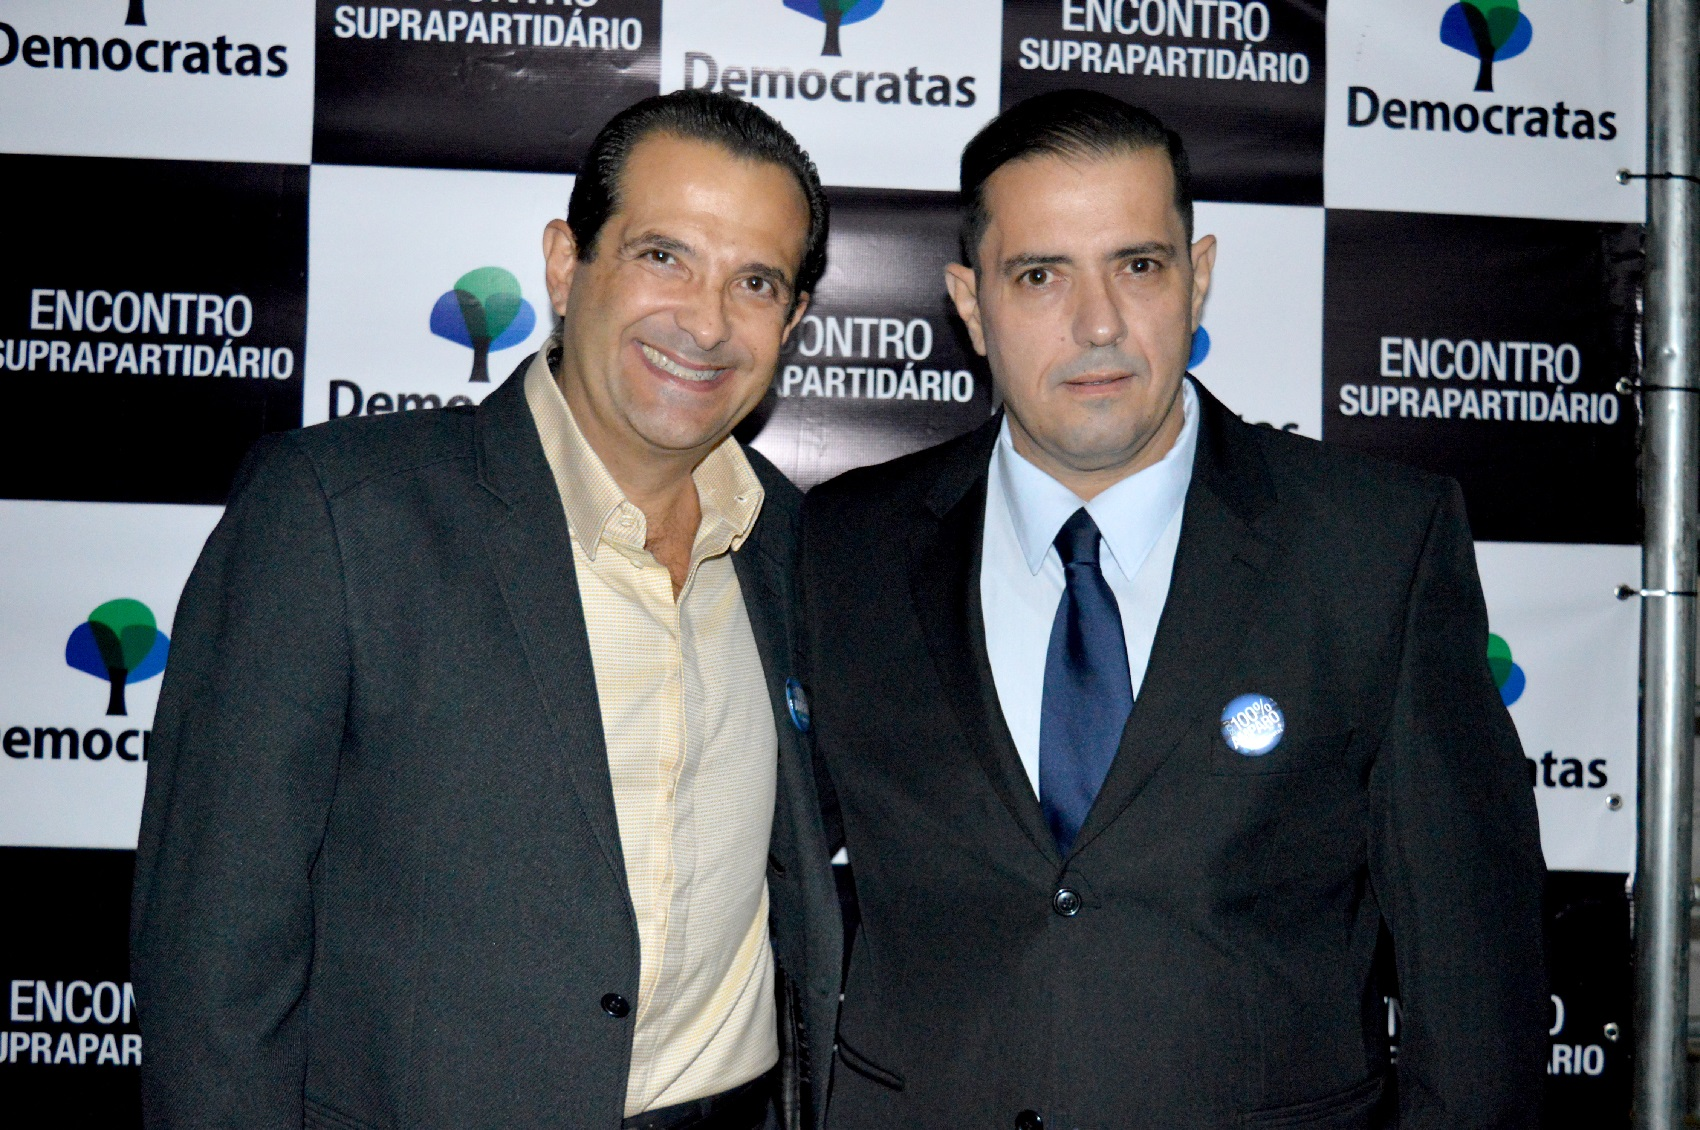 Edmir Chedid (esq.) e Rogério Catanese<a style='float:right' href='https://www3.al.sp.gov.br/repositorio/noticia/N-06-2016/fg191742.jpg' target=_blank><img src='/_img/material-file-download-white.png' width='14px' alt='Clique para baixar a imagem'></a>